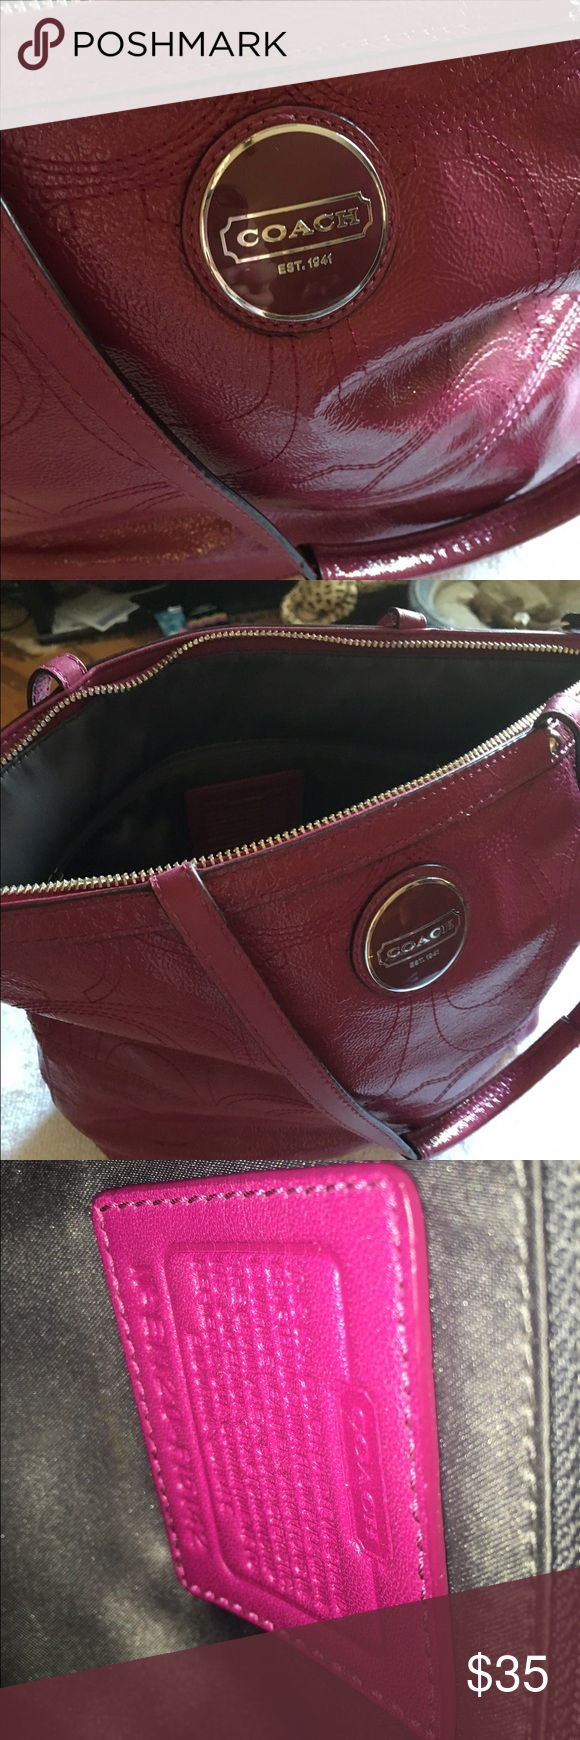 Coach handbag Used a lot, but in still good condition ! But can tell it is used! Coach Bags Totes